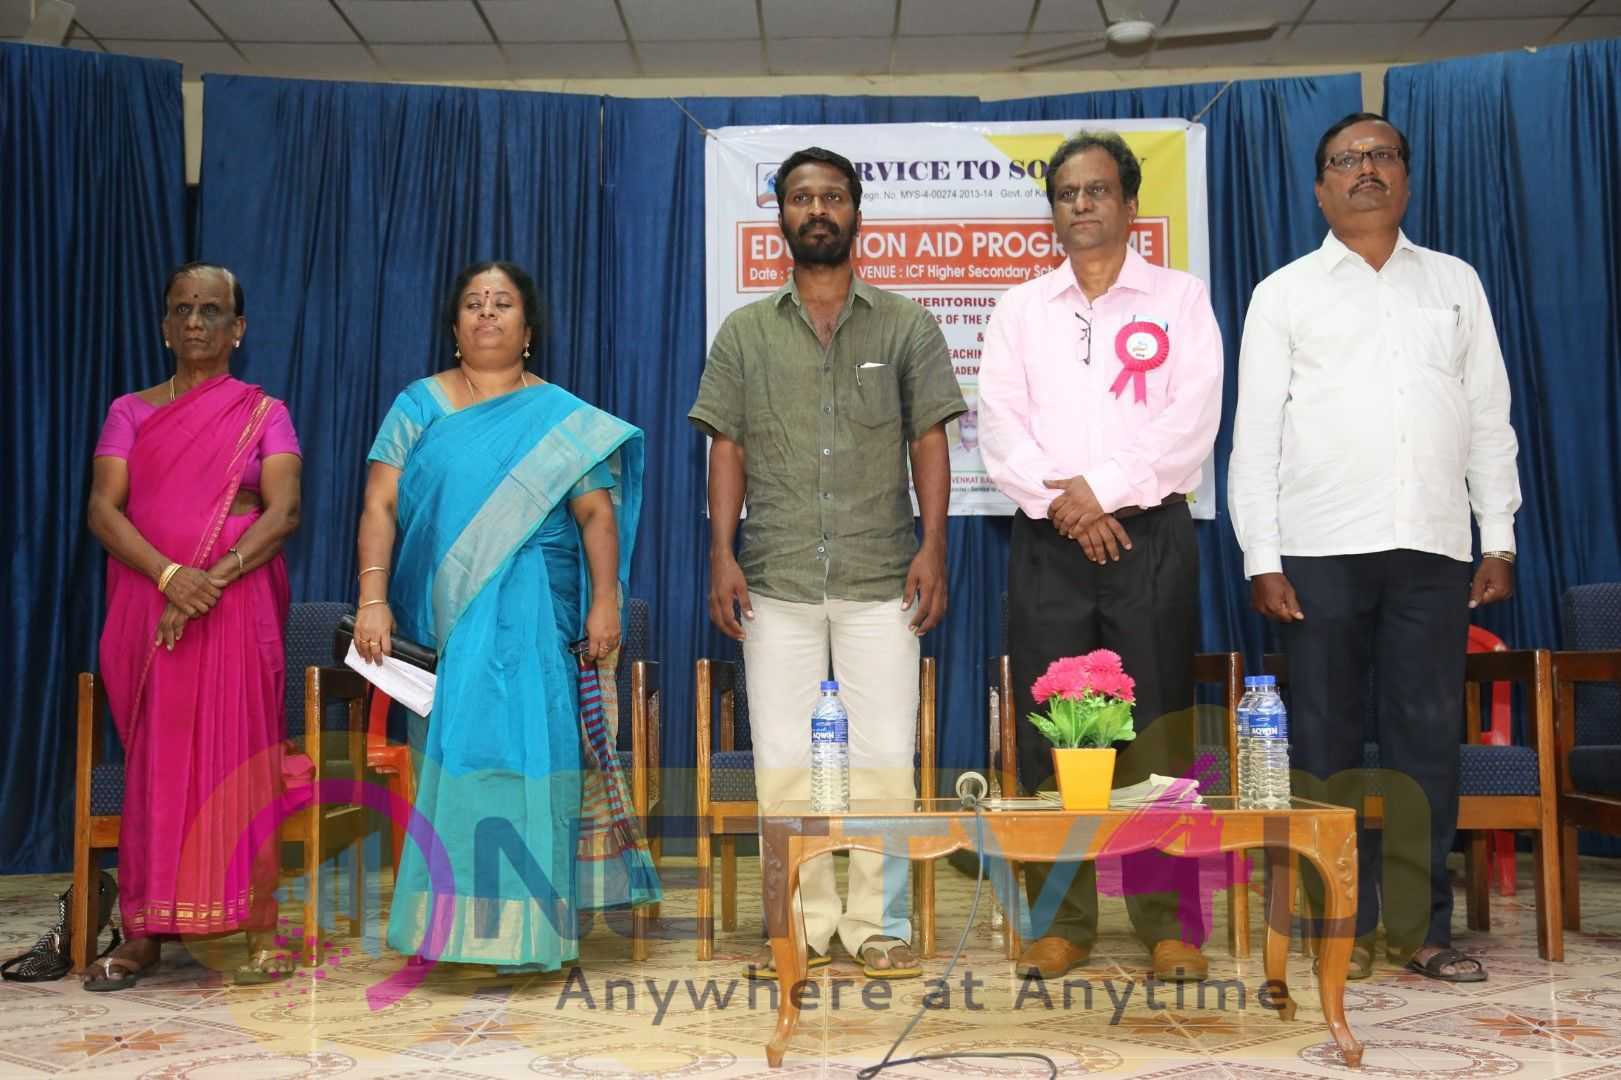 Director Vetrimaaran At Service To Society  Educational AID Program At ICF Higher Secondary School  Best Images Tamil Gallery